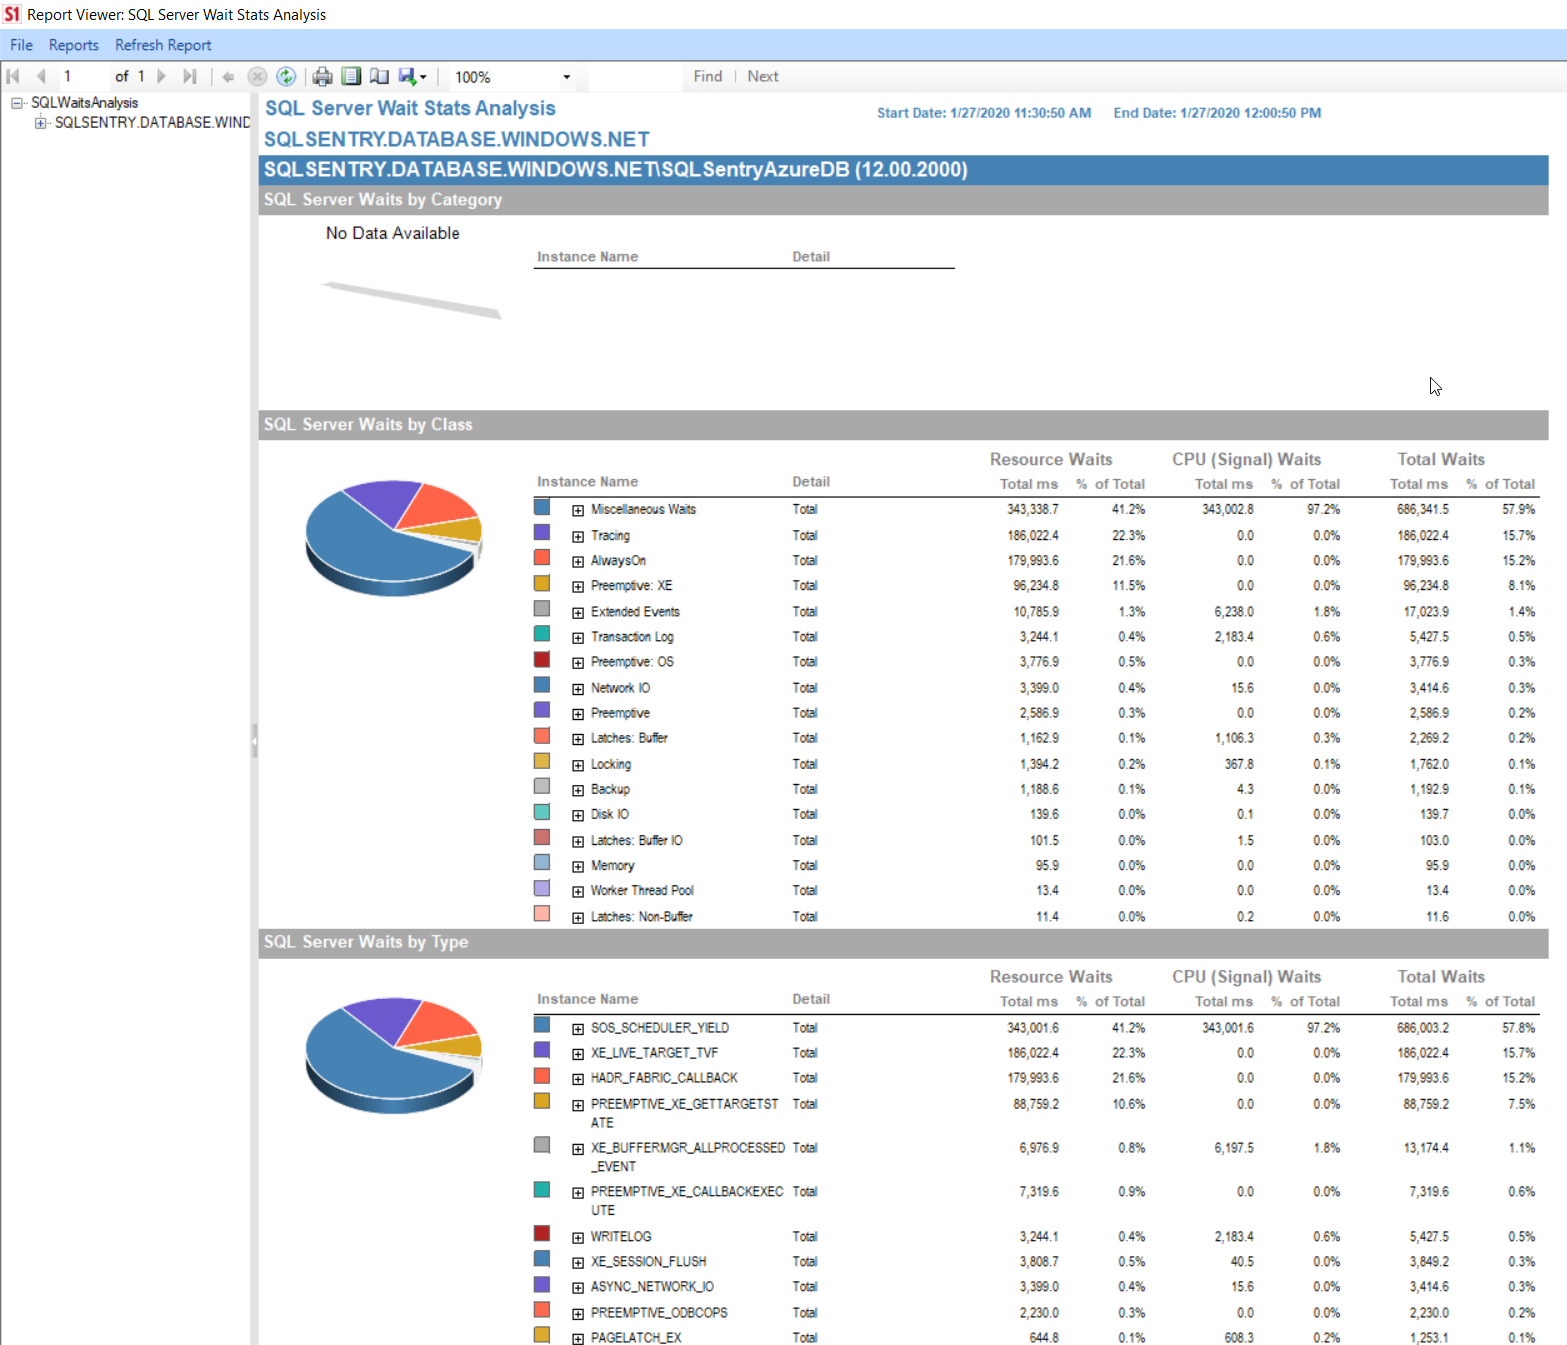 SentryOne Report Viewer SQL Server Wait Stat Analysis